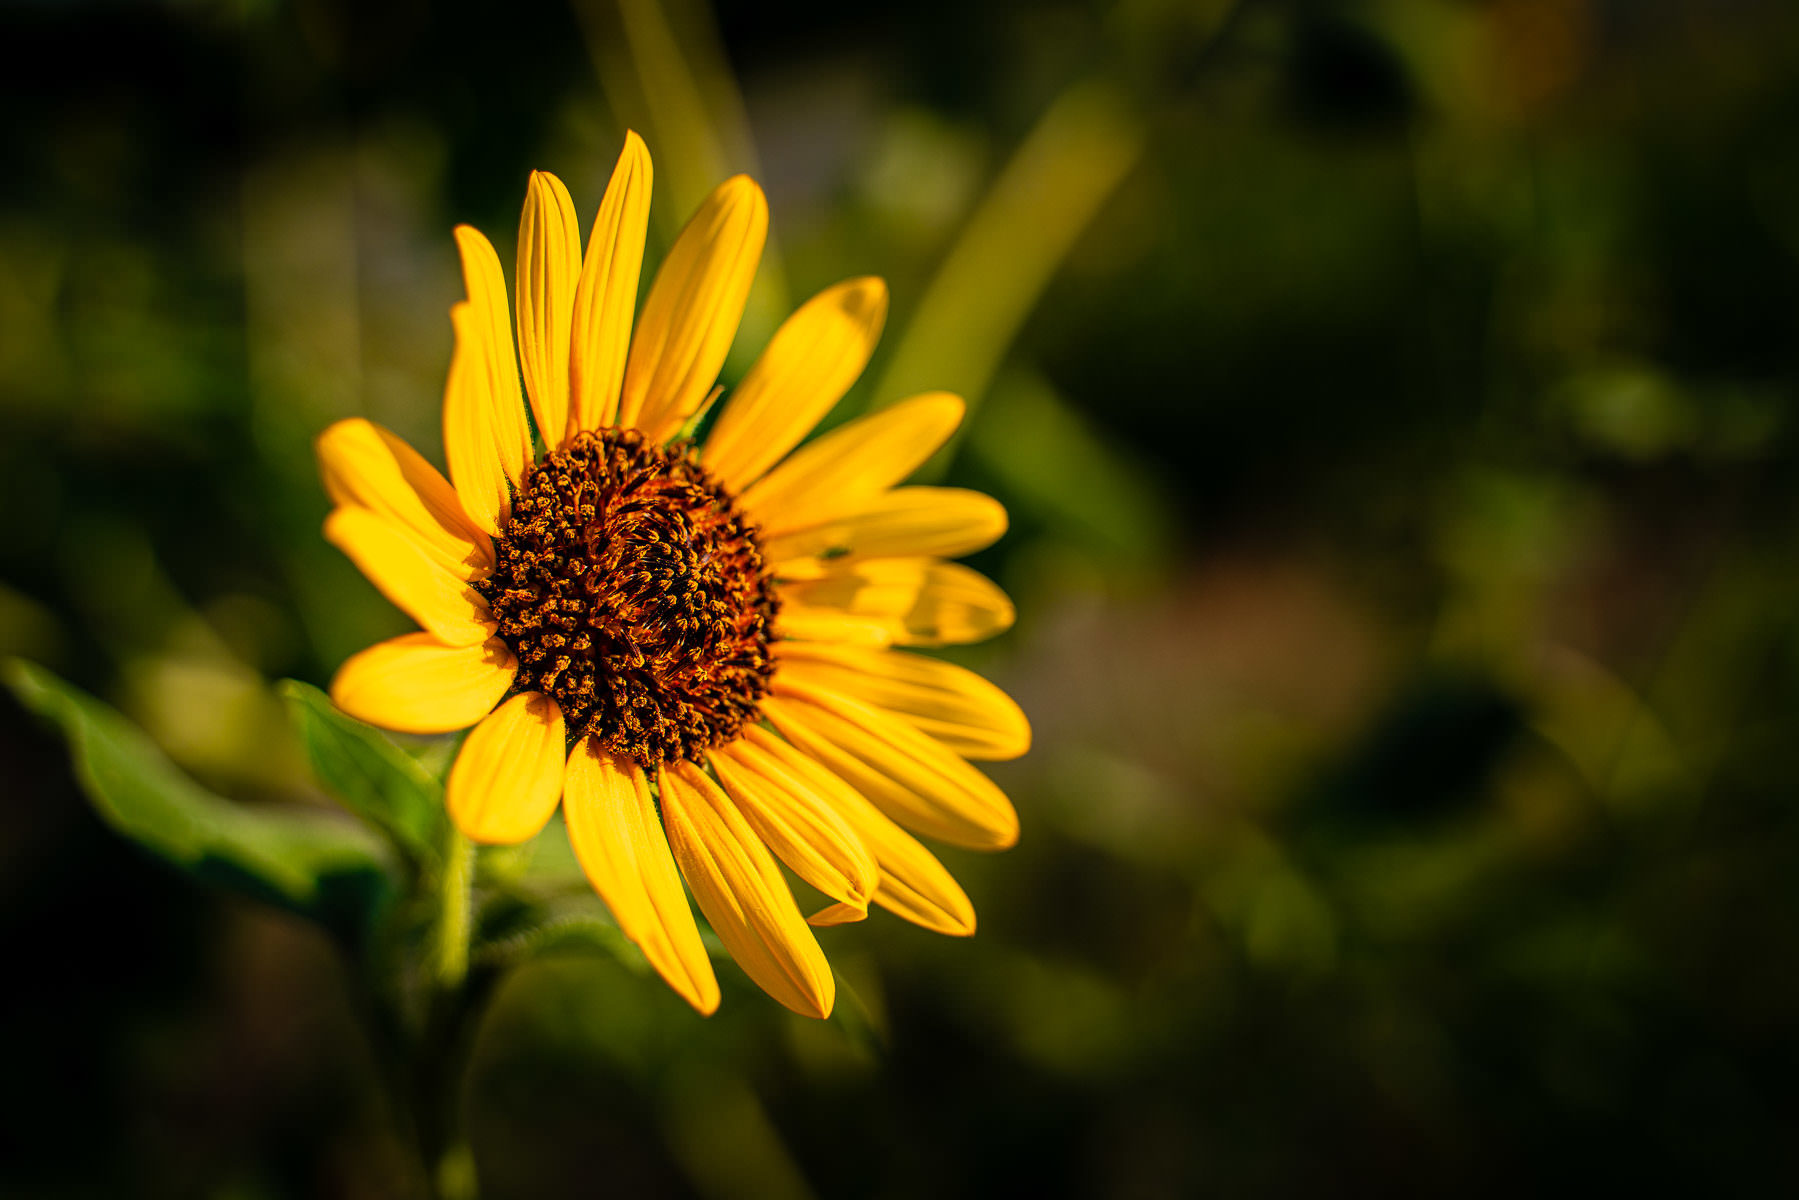 A sunflower spotting in a field near McKinney, Texas.